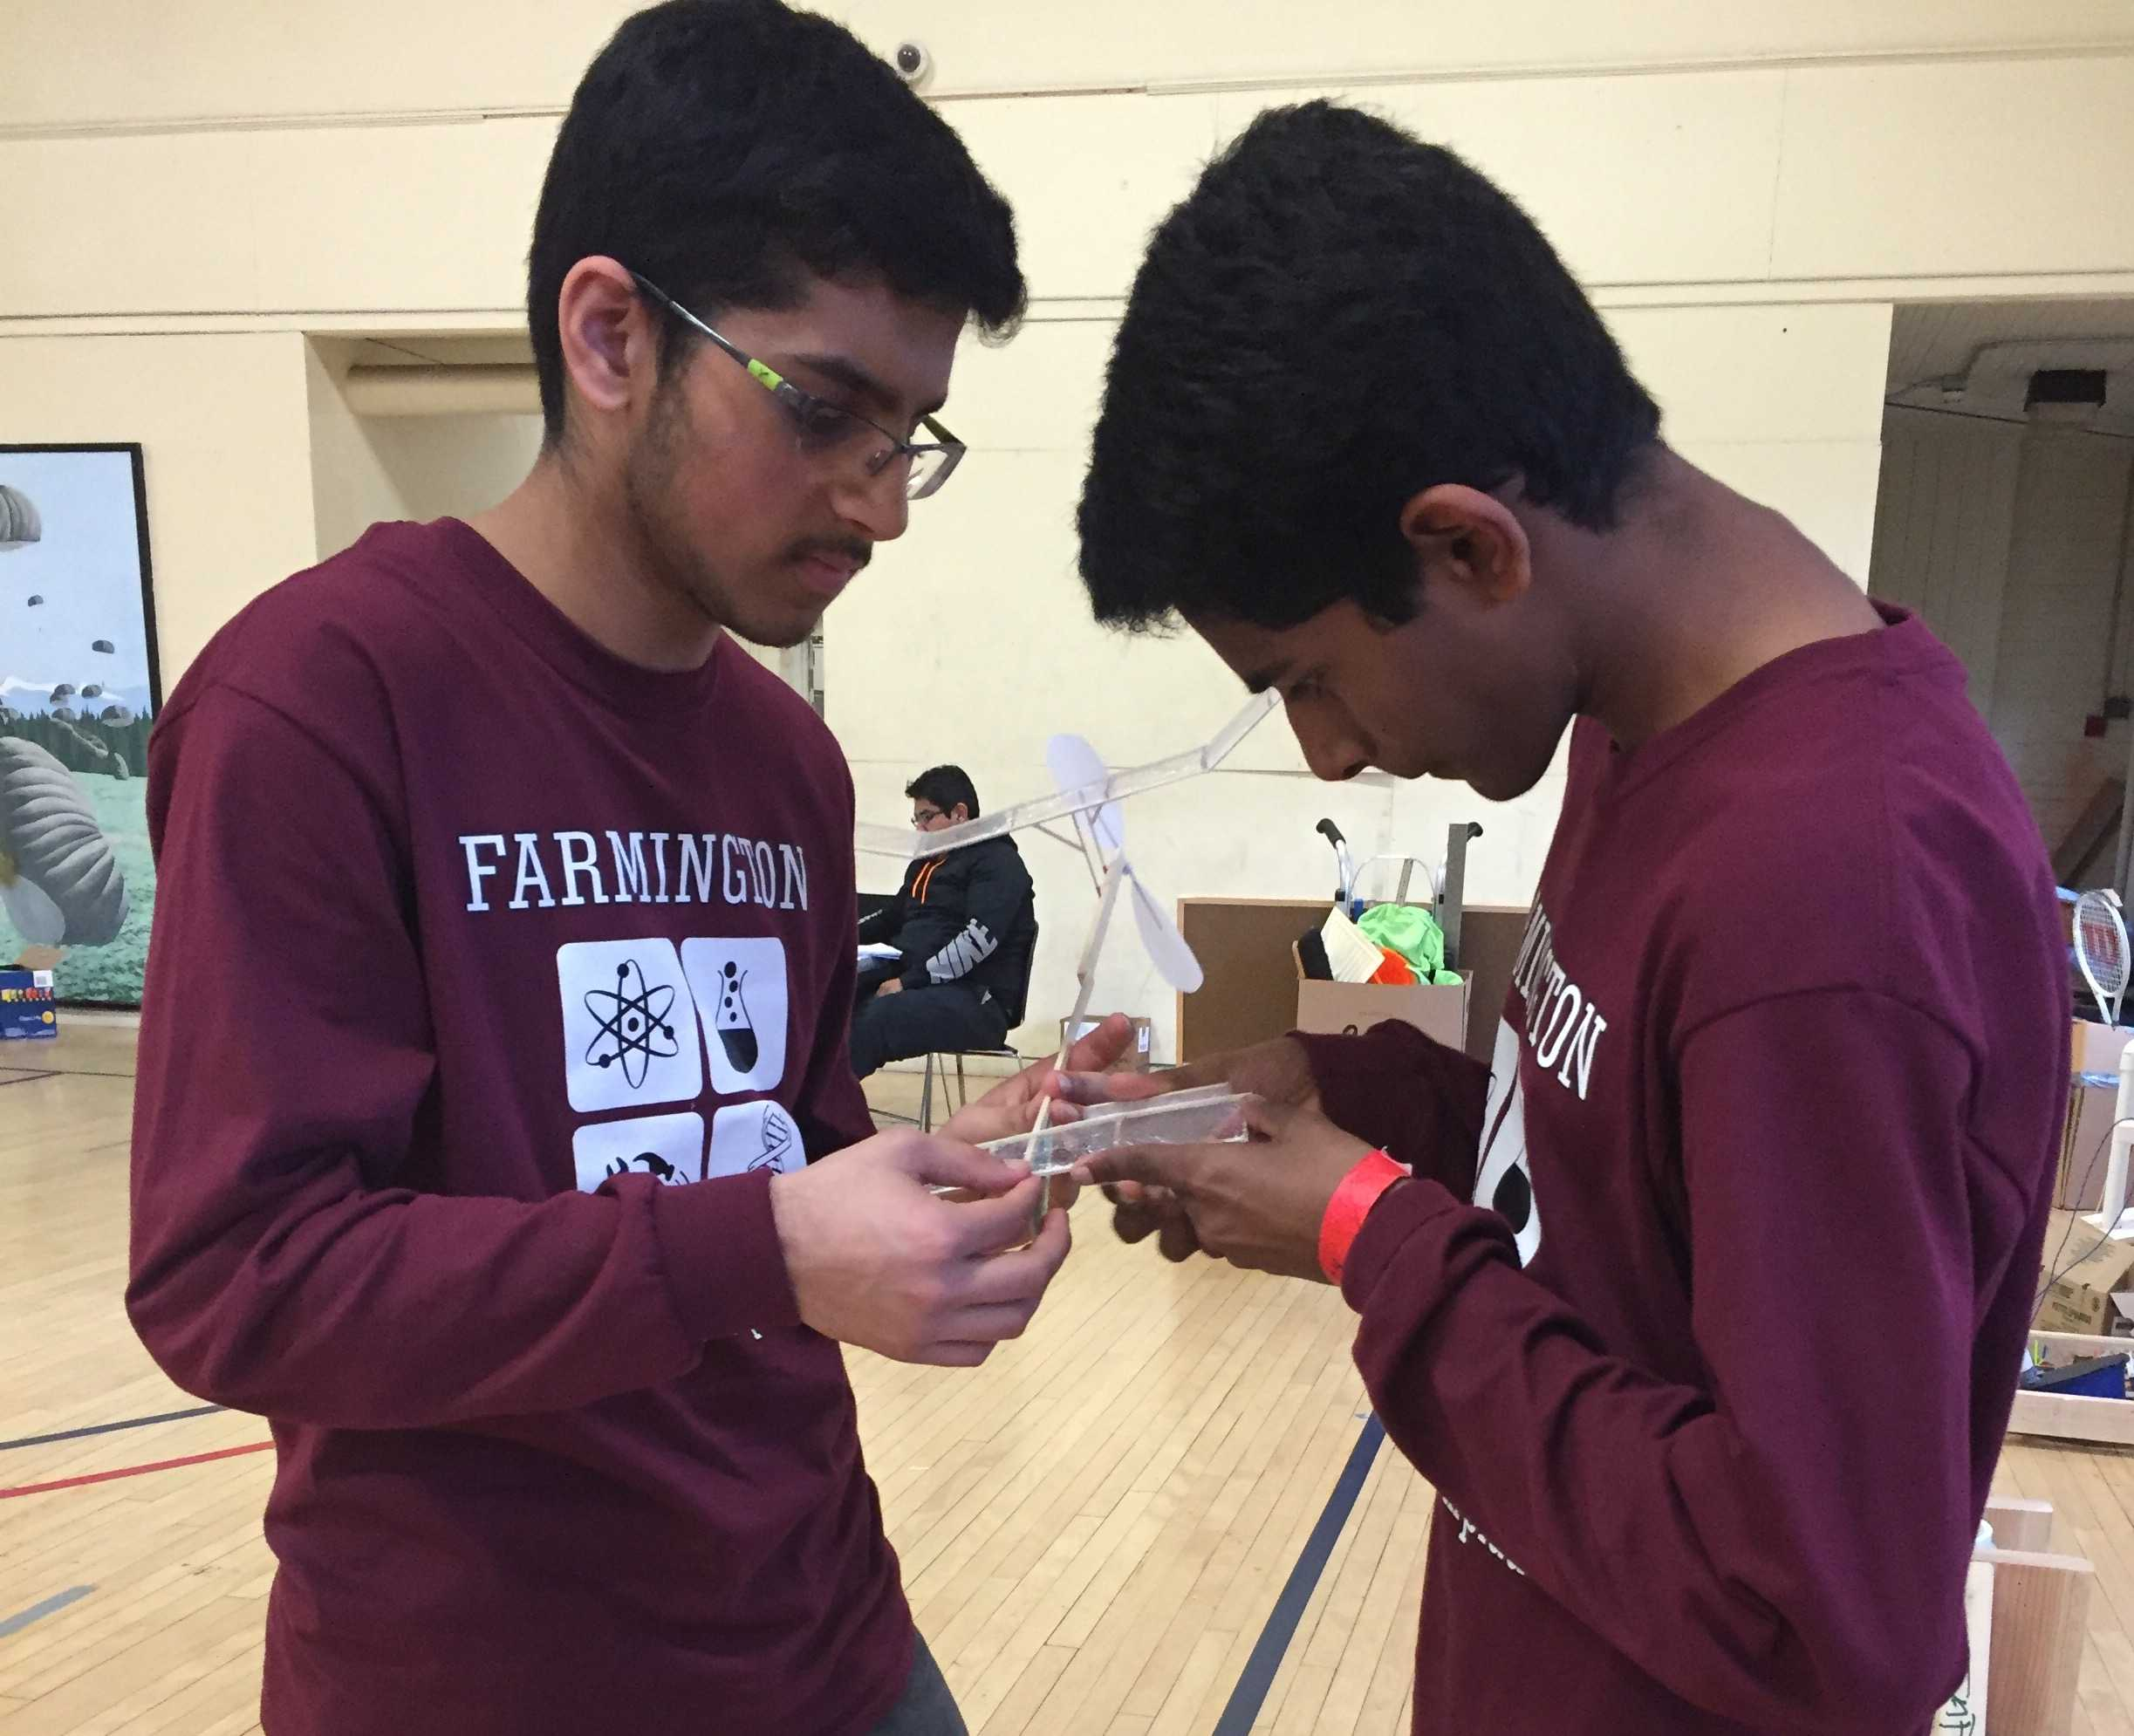 Preparing for takeoff-- Sophomore Amir Suhail and freshman Vishanth Palanivel file down the wings on the rubber band-powered plane prior to the competition for the event Wright Stuff. The duo launched their plane and was scored on the amount of time that it spent in the air. They placed seventh out of the teams that competed in this event.